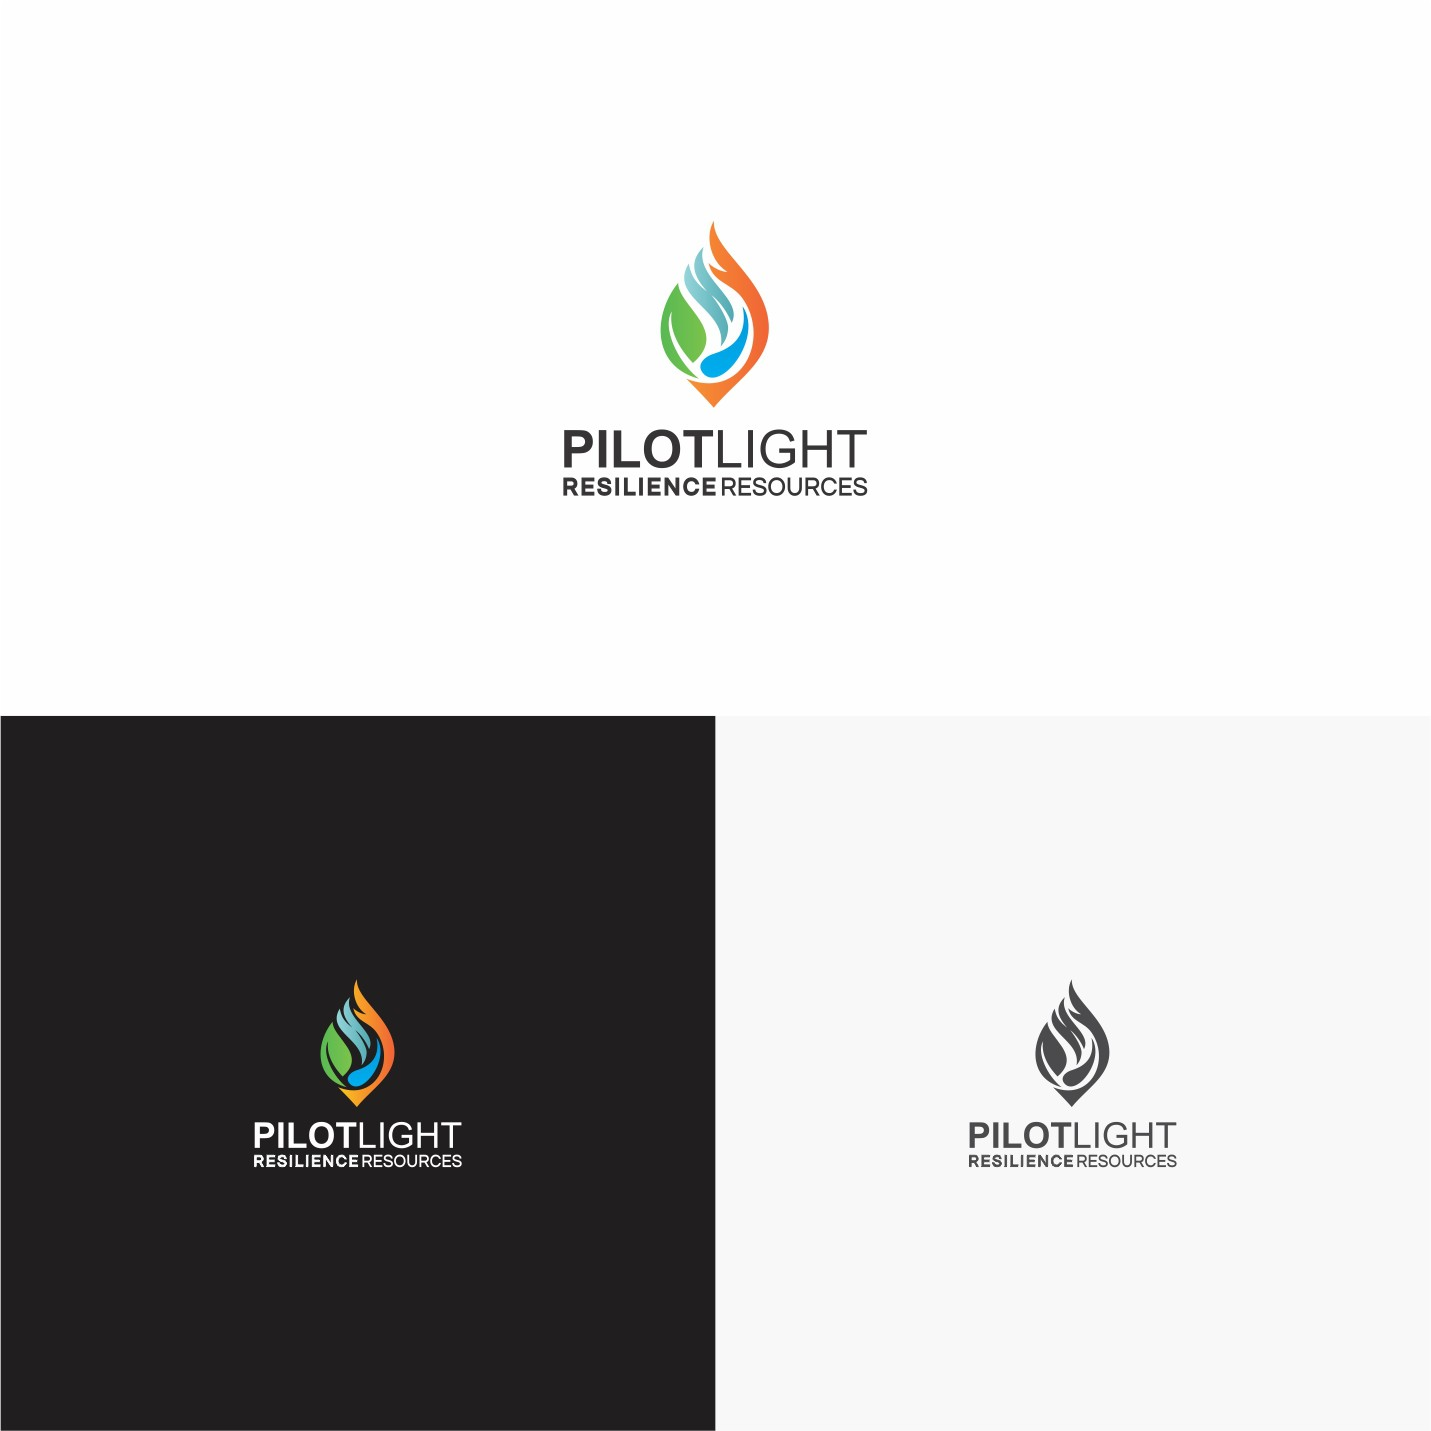 Create eye-catching logo for startup consultancy PilotLight Resilience Resources